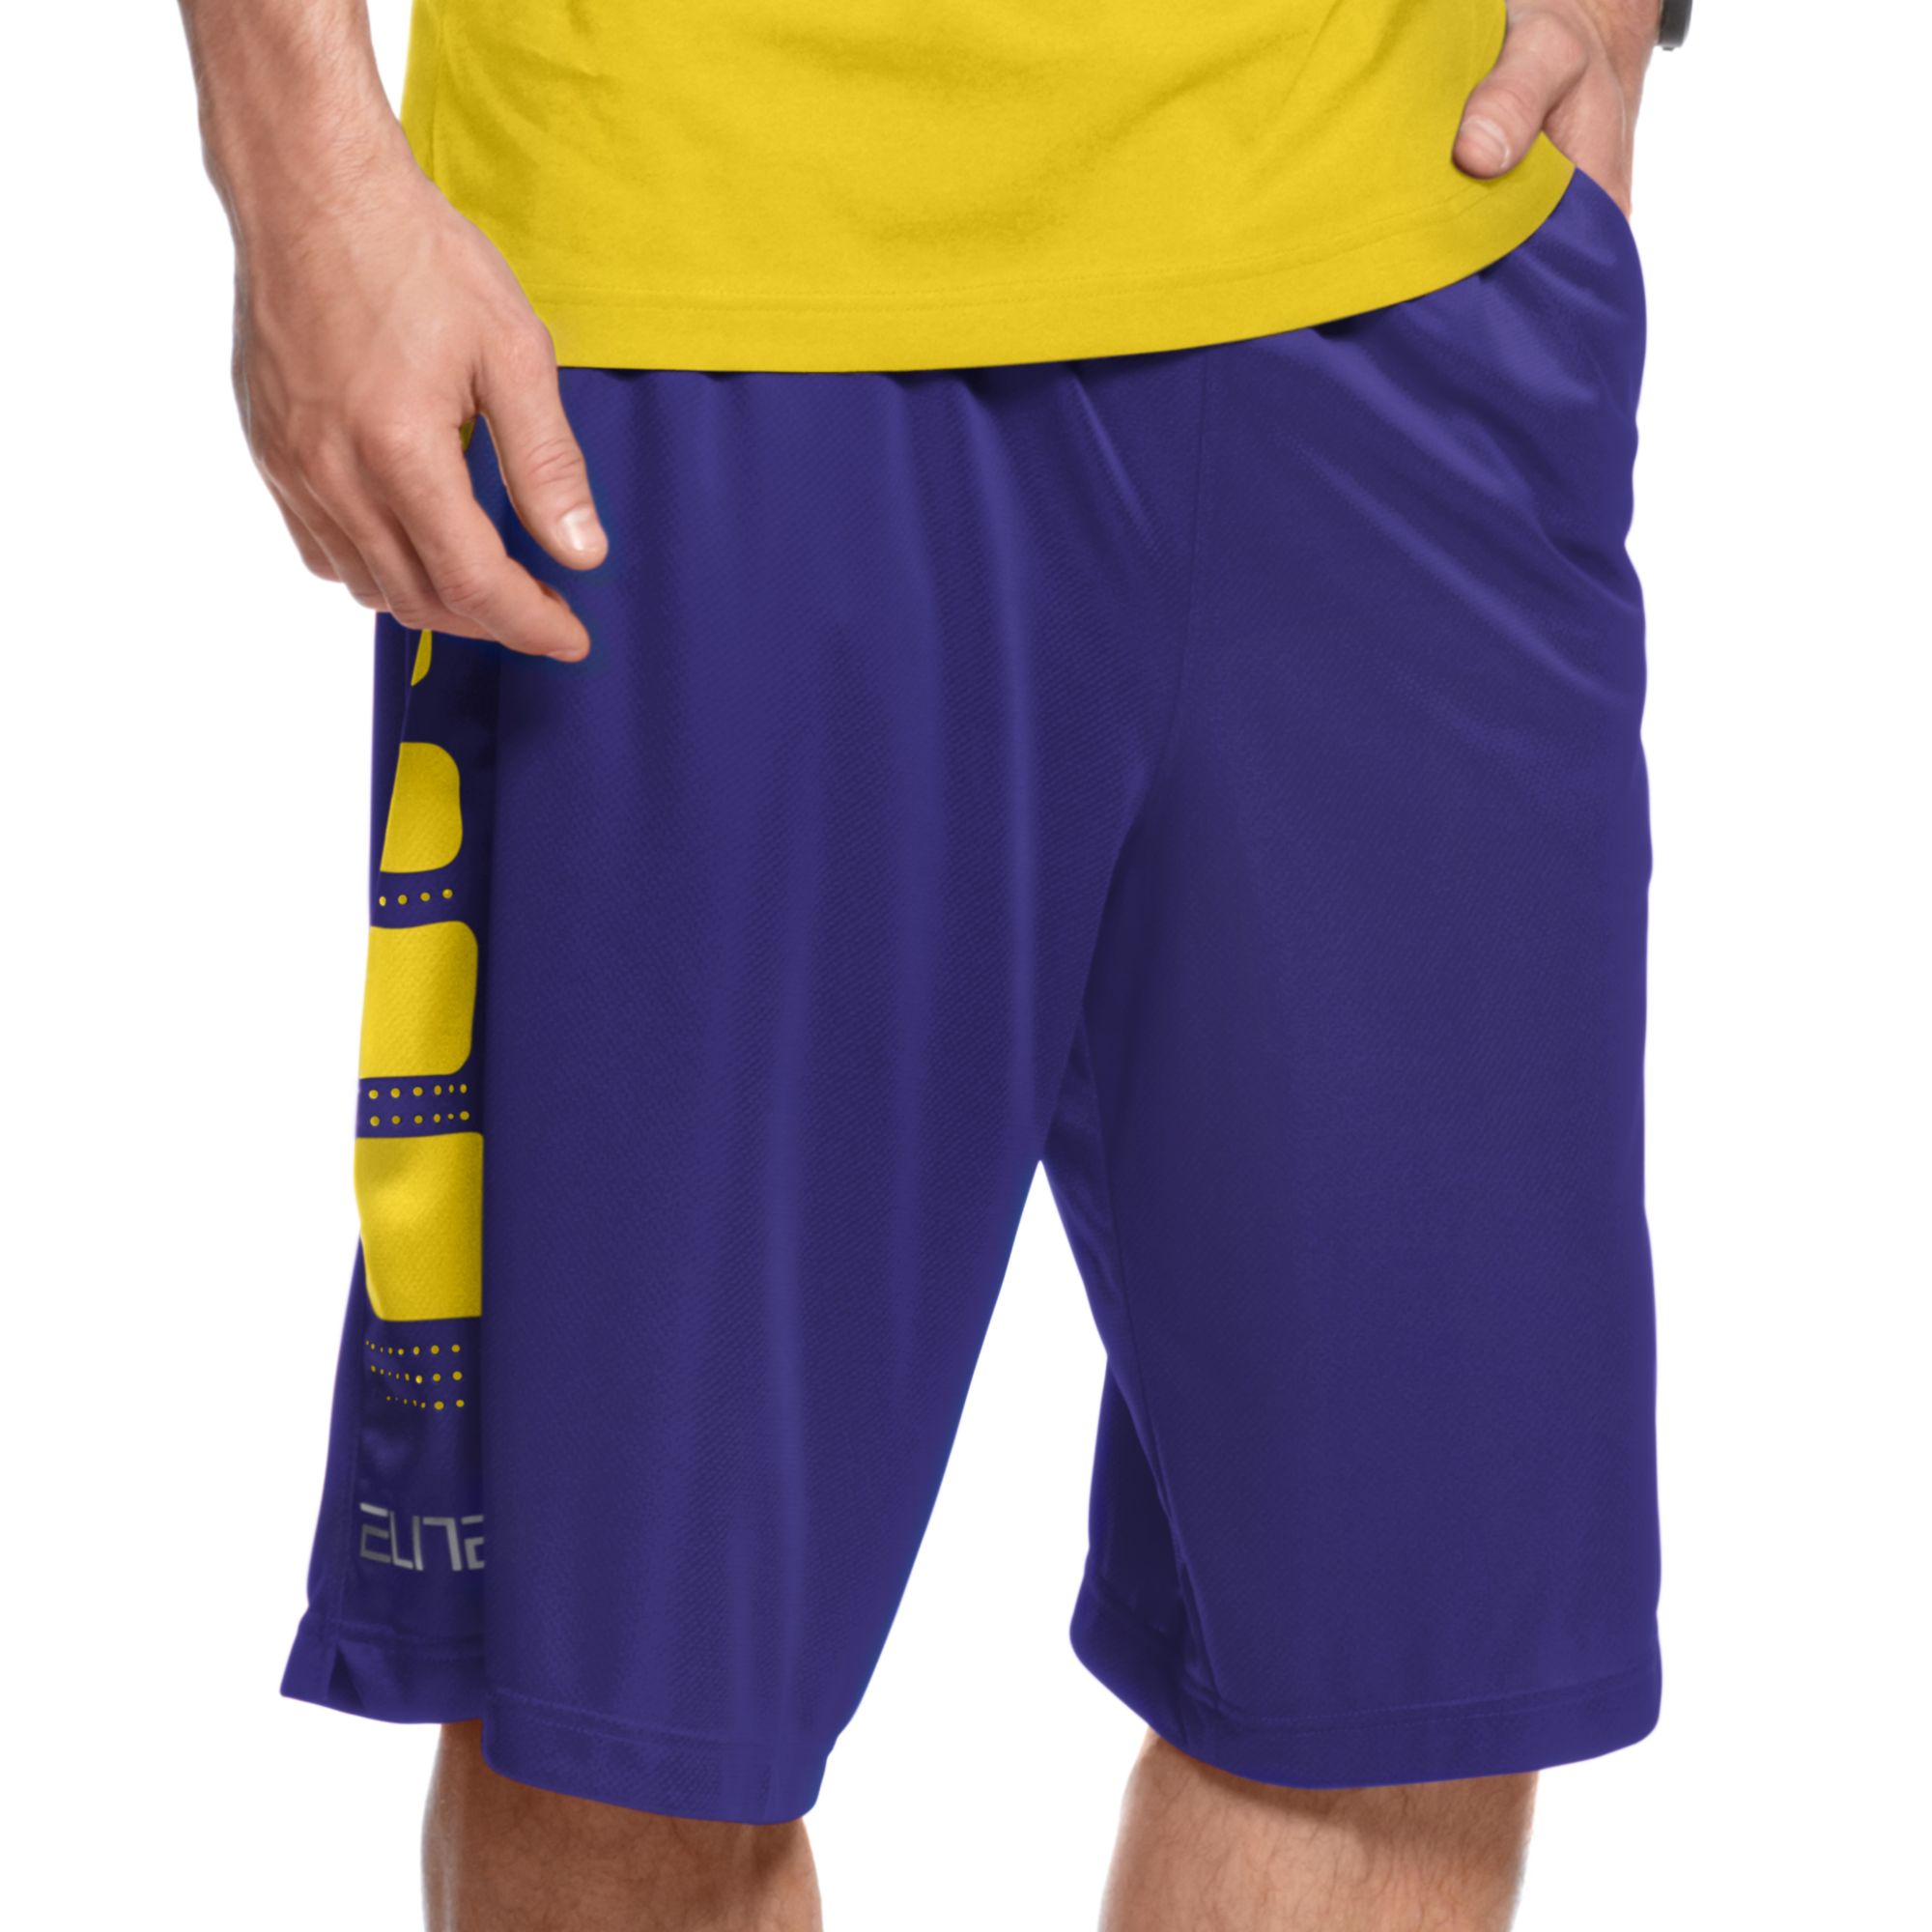 nike shorts purple